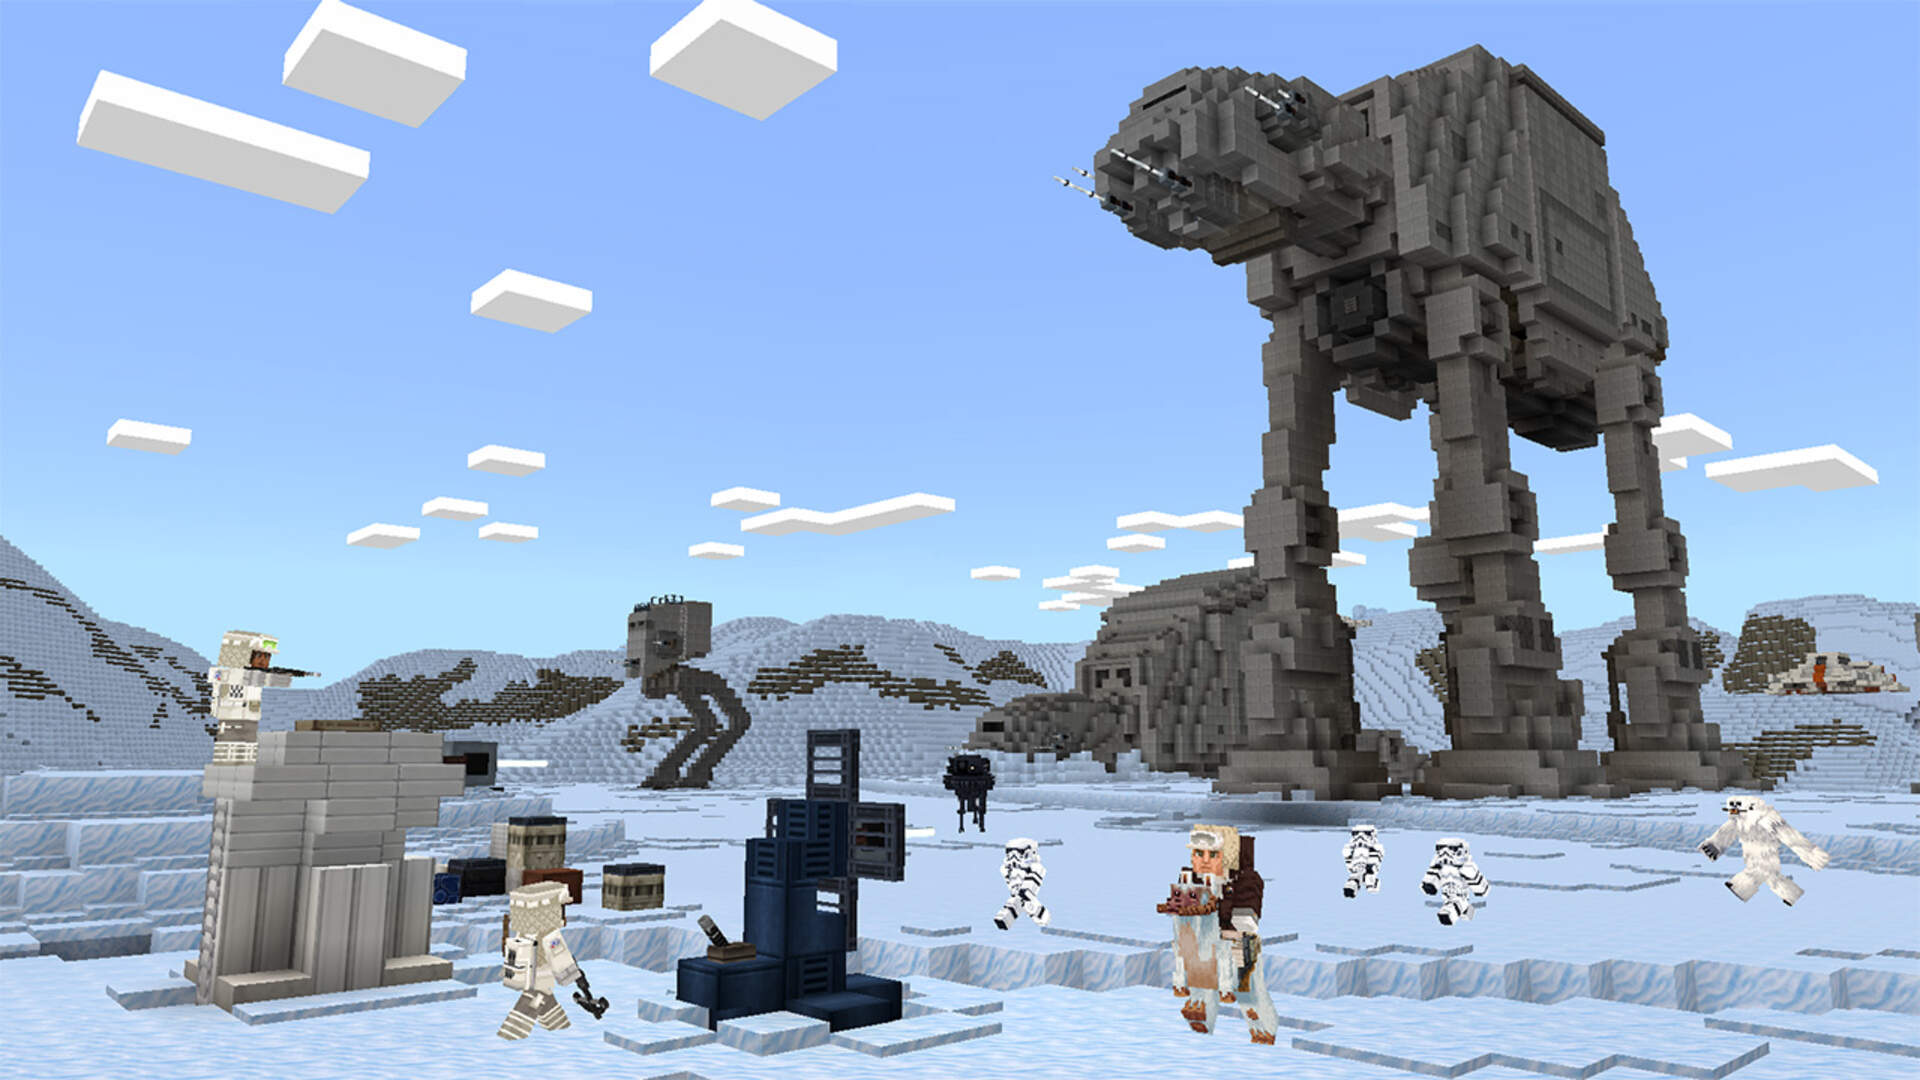 Minecraft's New Star Wars Add-On Ignores the Prequels and Sequels, Just Like You